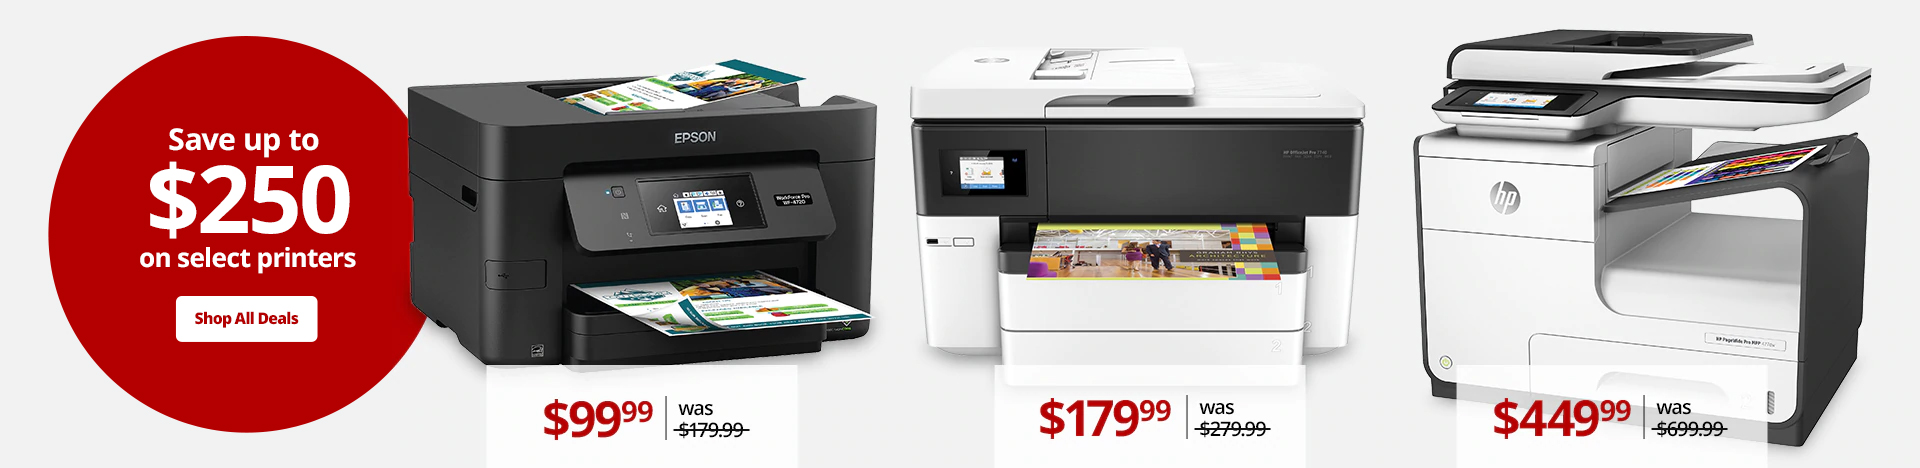 Save over $180 on select printers